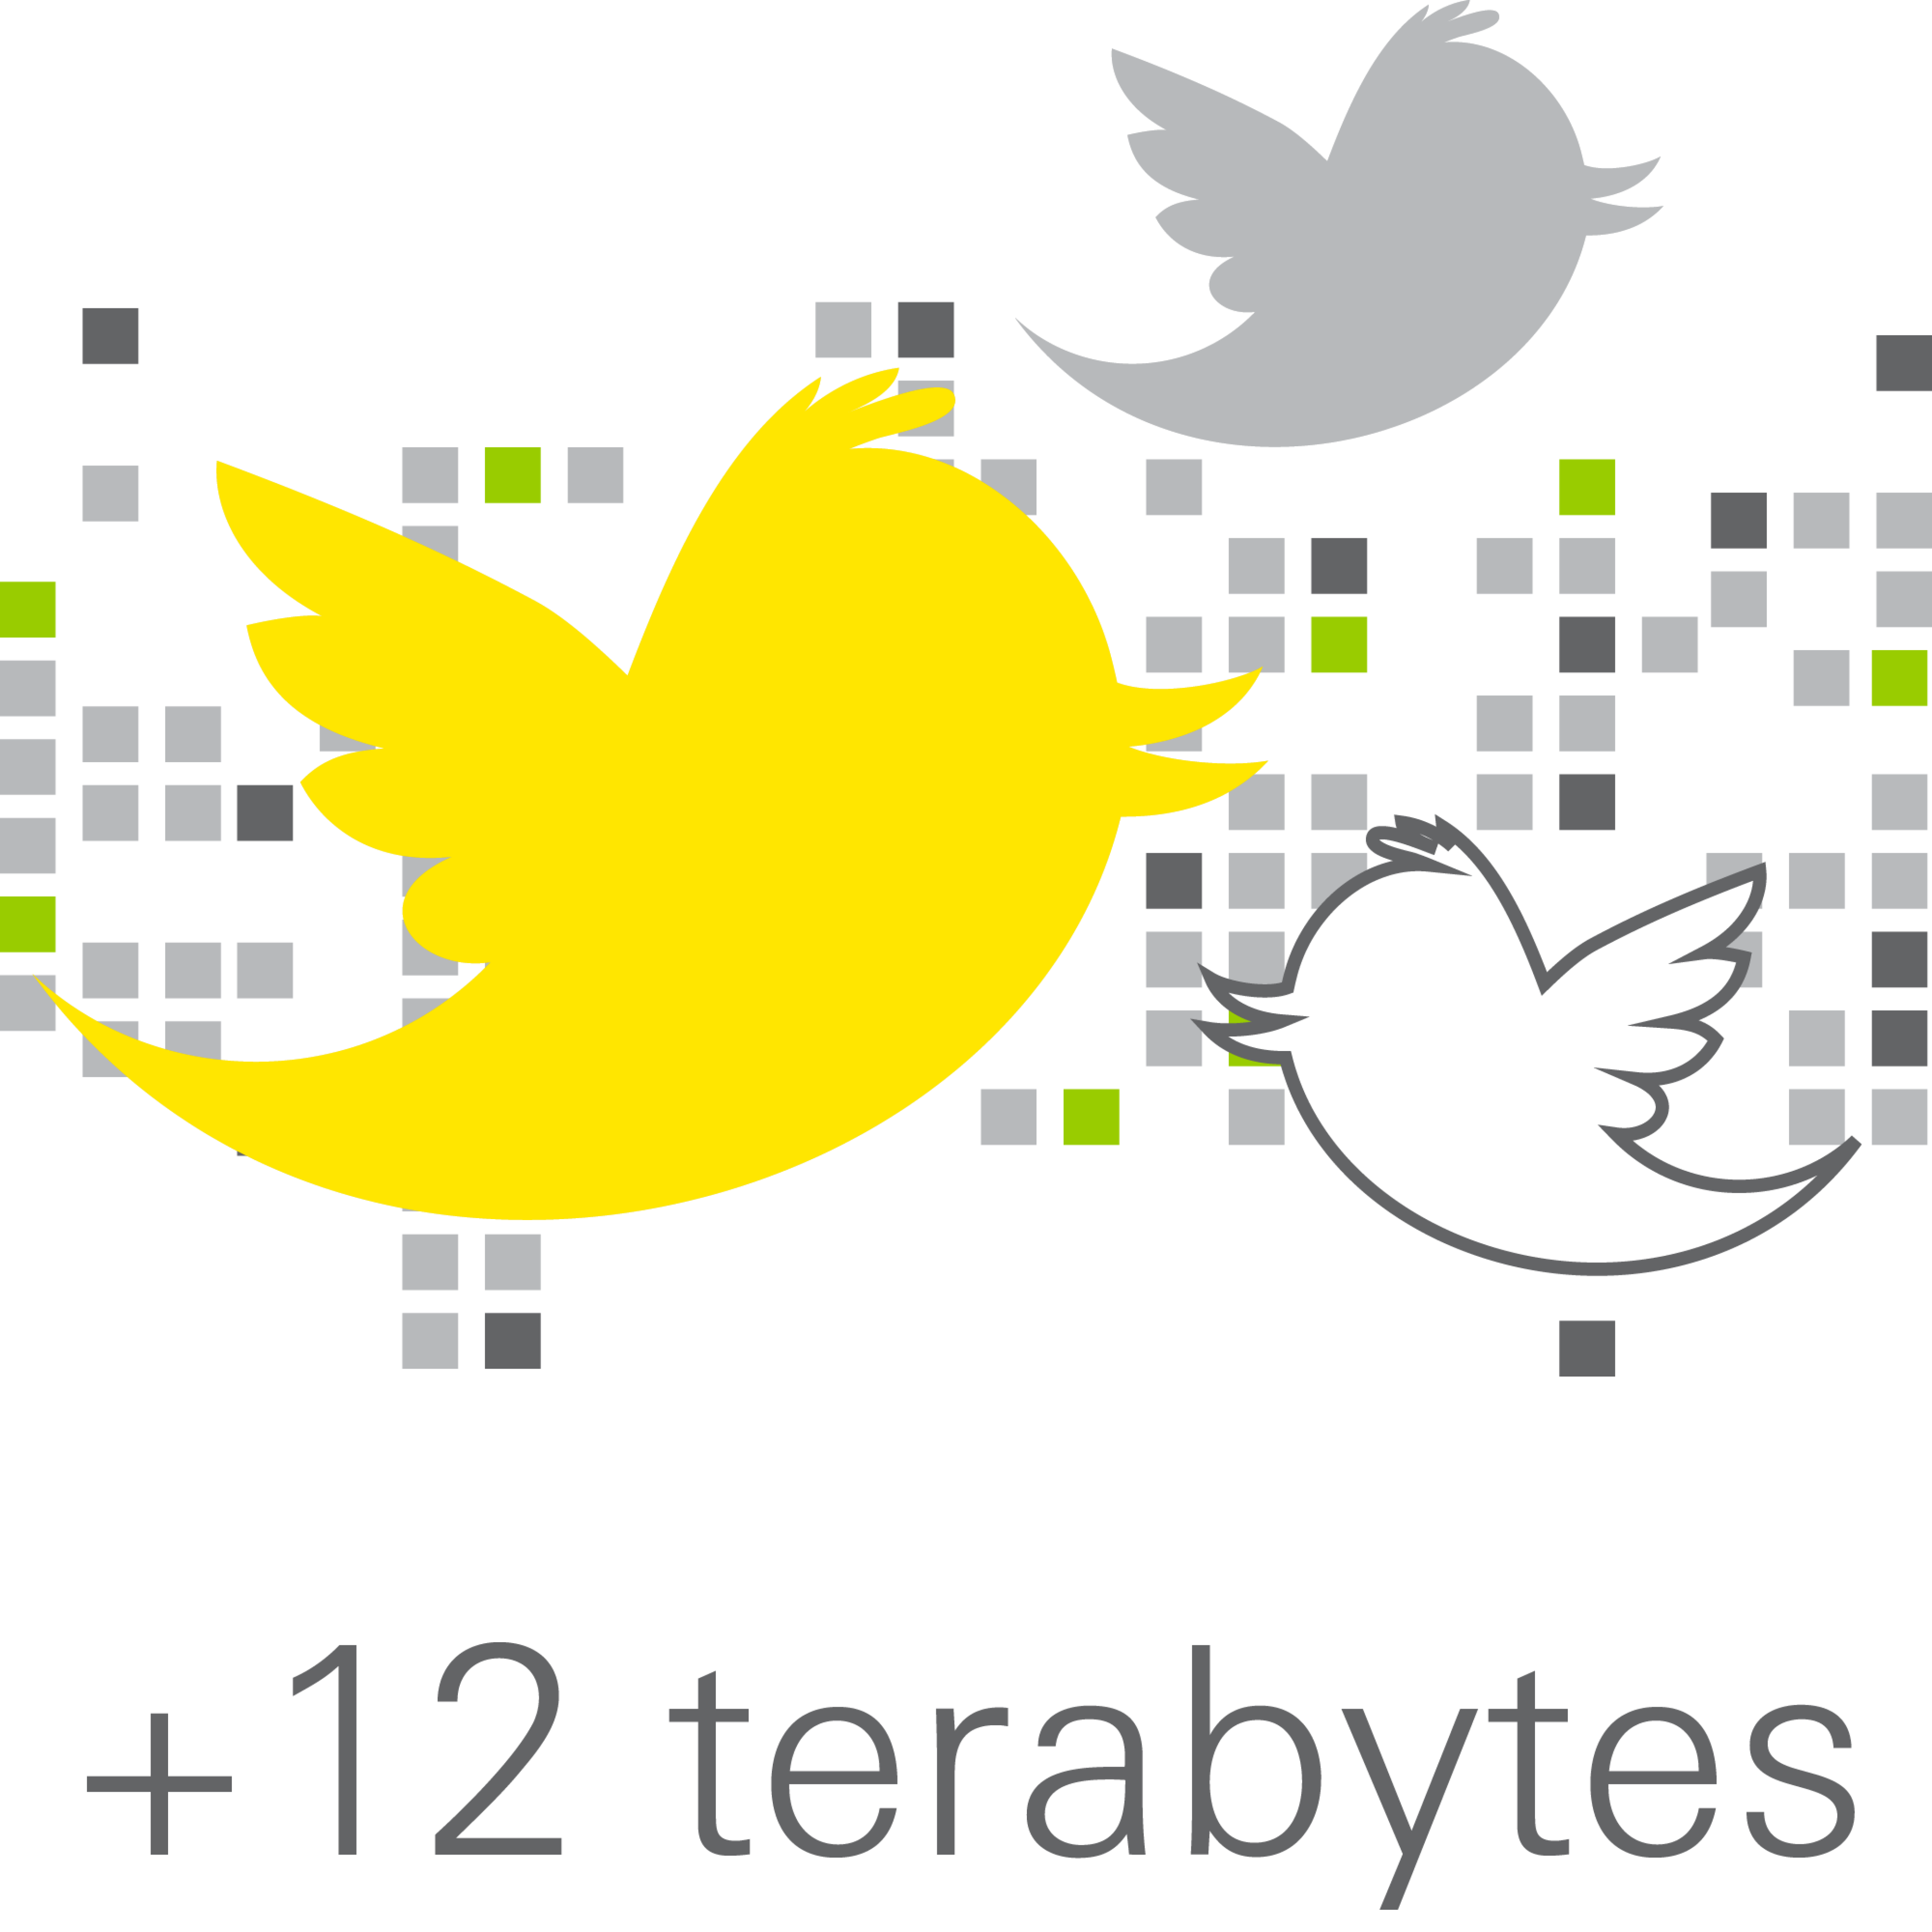 Graphic depicts 12 terabytes